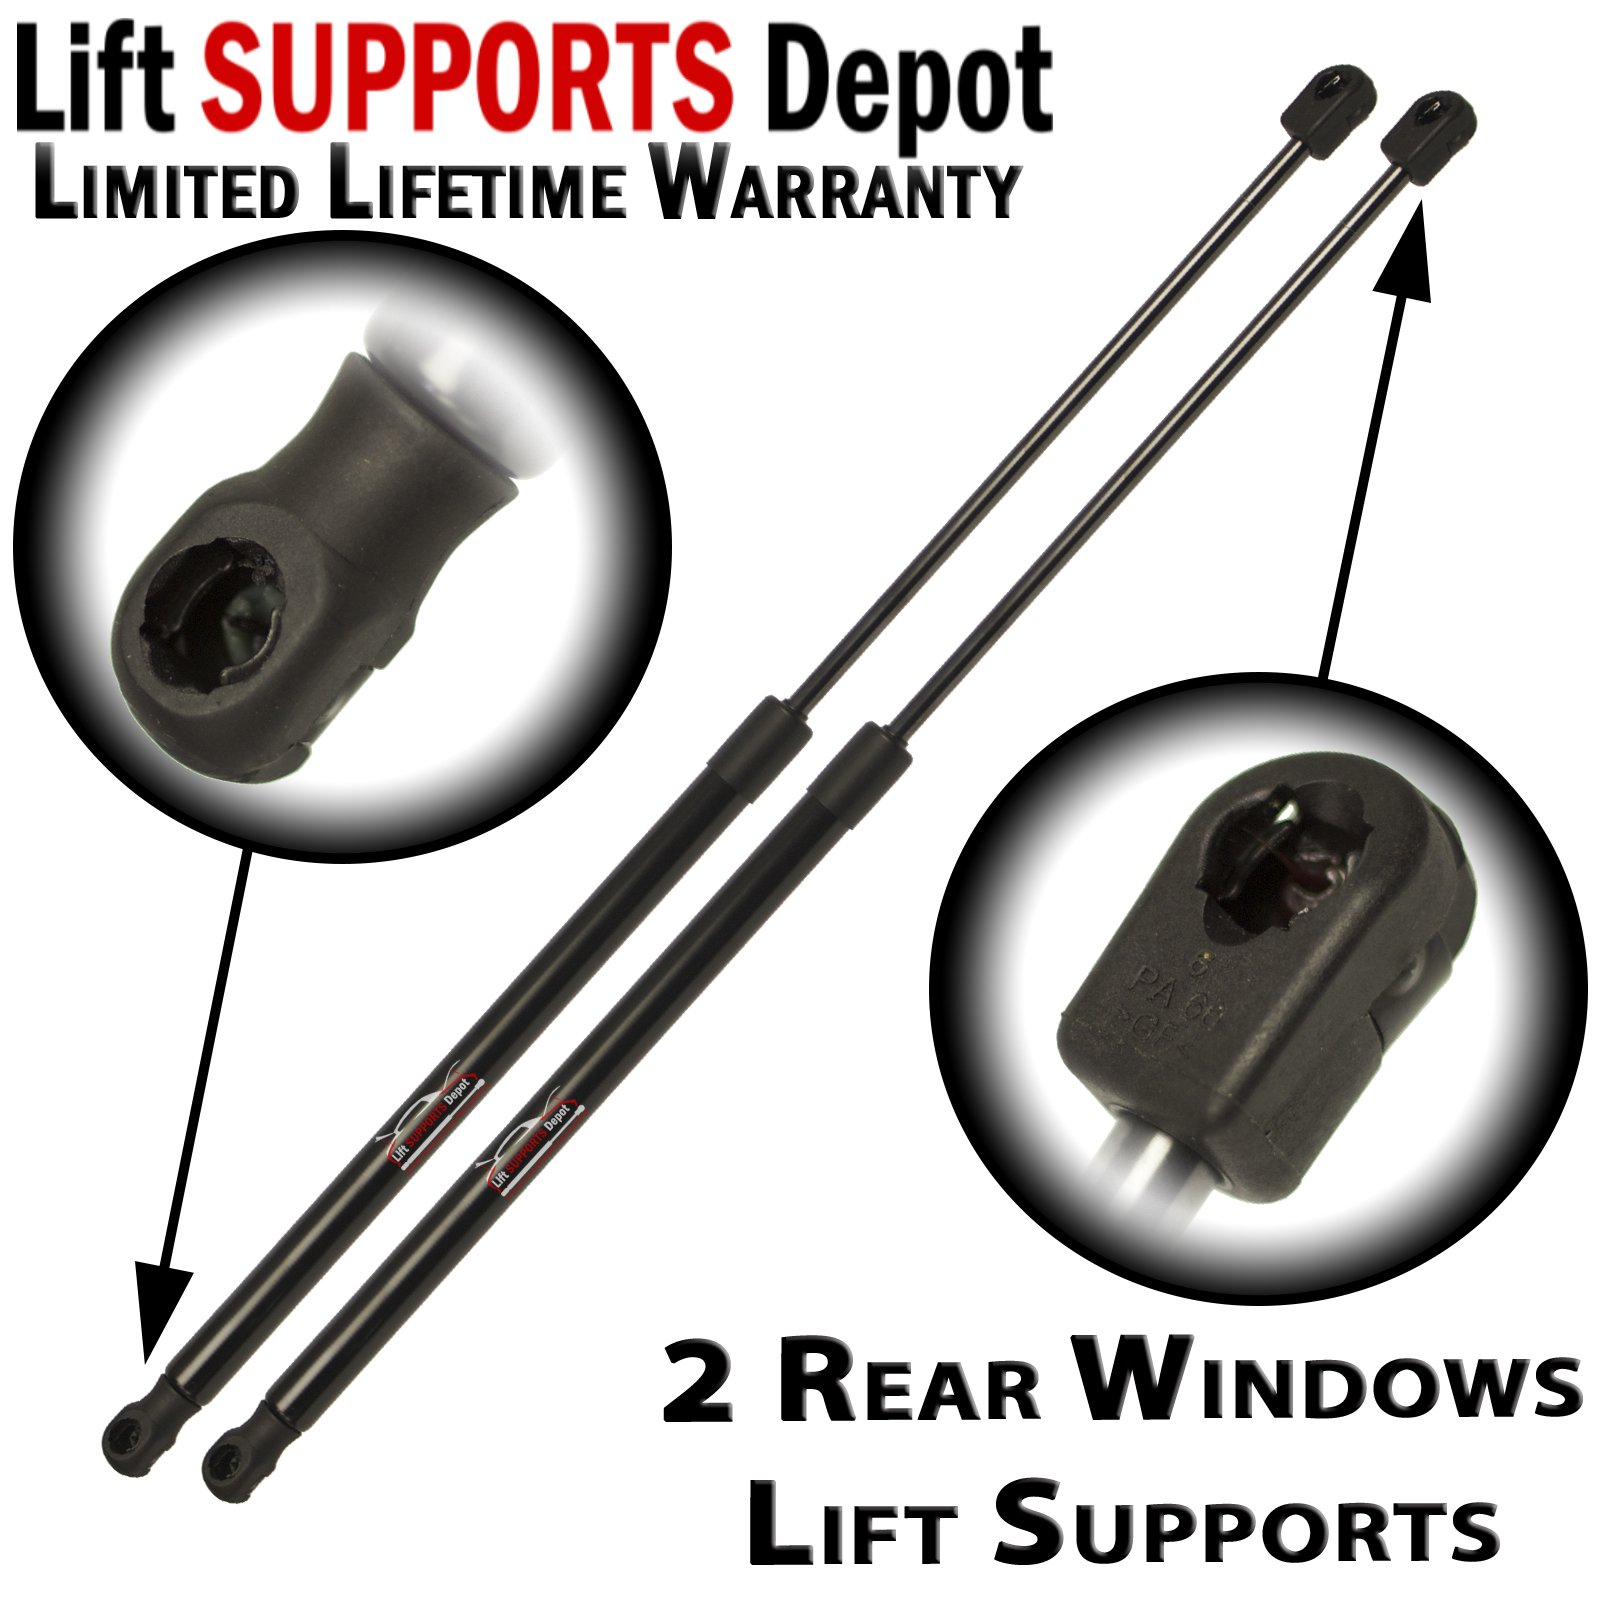 2pcs Liftgate Trunk Struts Lift Supports Shocks W//O Power Gate for Honda Pilot 2009 To 2012 6663,74820SZAA11